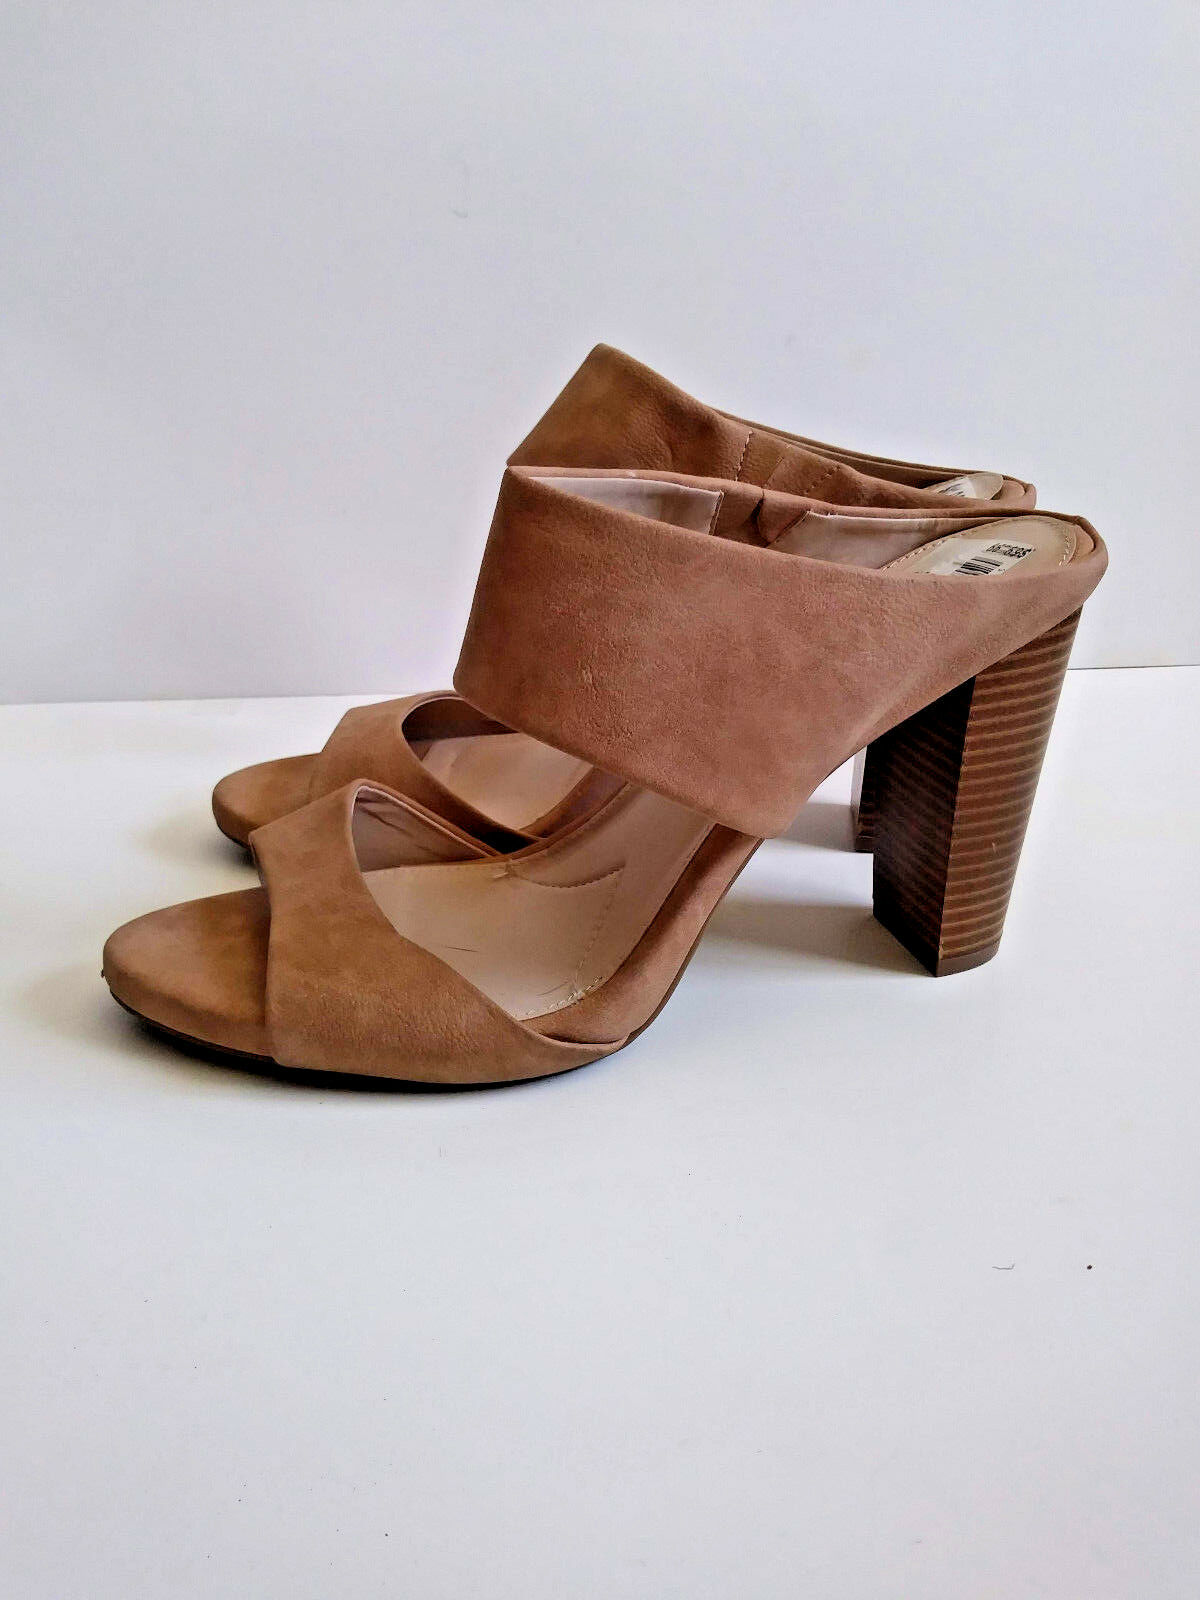 JENNIFER LOPEZ  Tan Nude Mule Sandal High Heels EXCELLENT